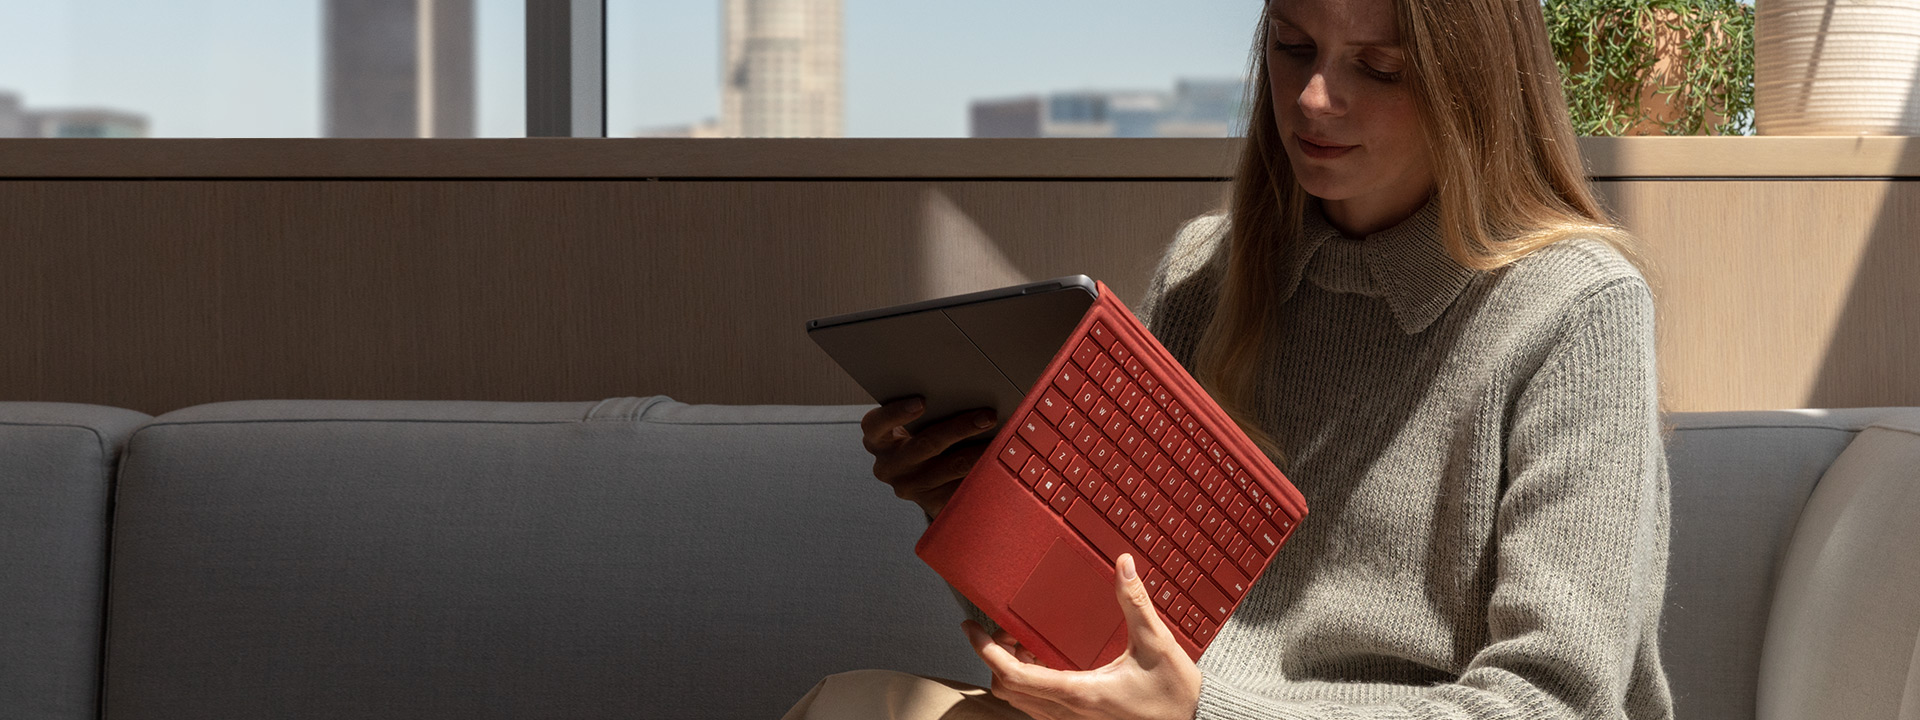 Person using Surface Pro 7 on the couch